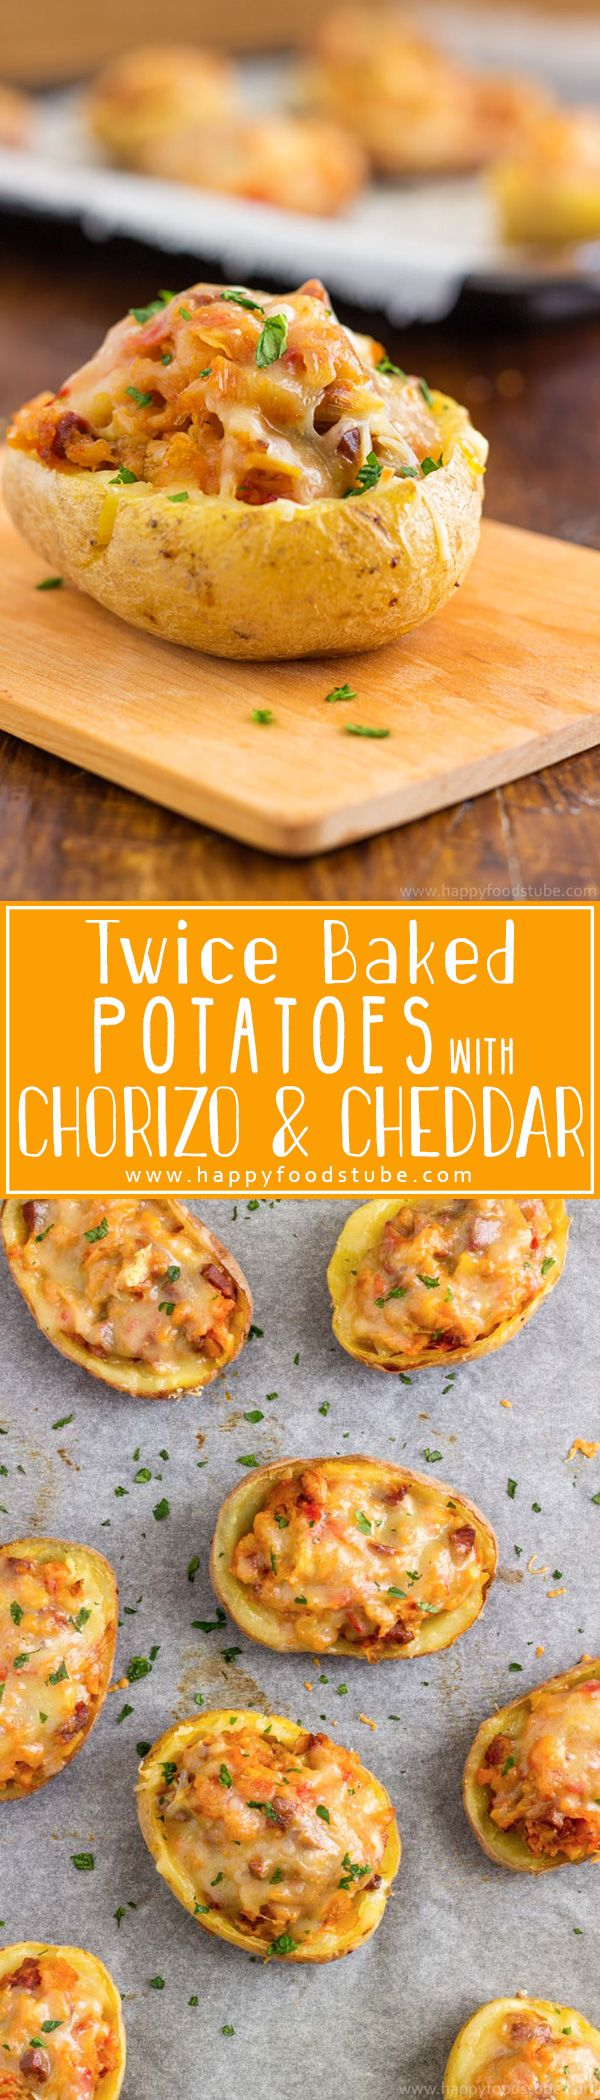 Twice baked potatoes with chorizo and cheddar can be enjoyed as an appetizer, side dish or a main! They are rich, filling and most of all delicious! Super easy recipe! | happyfoodstube.com